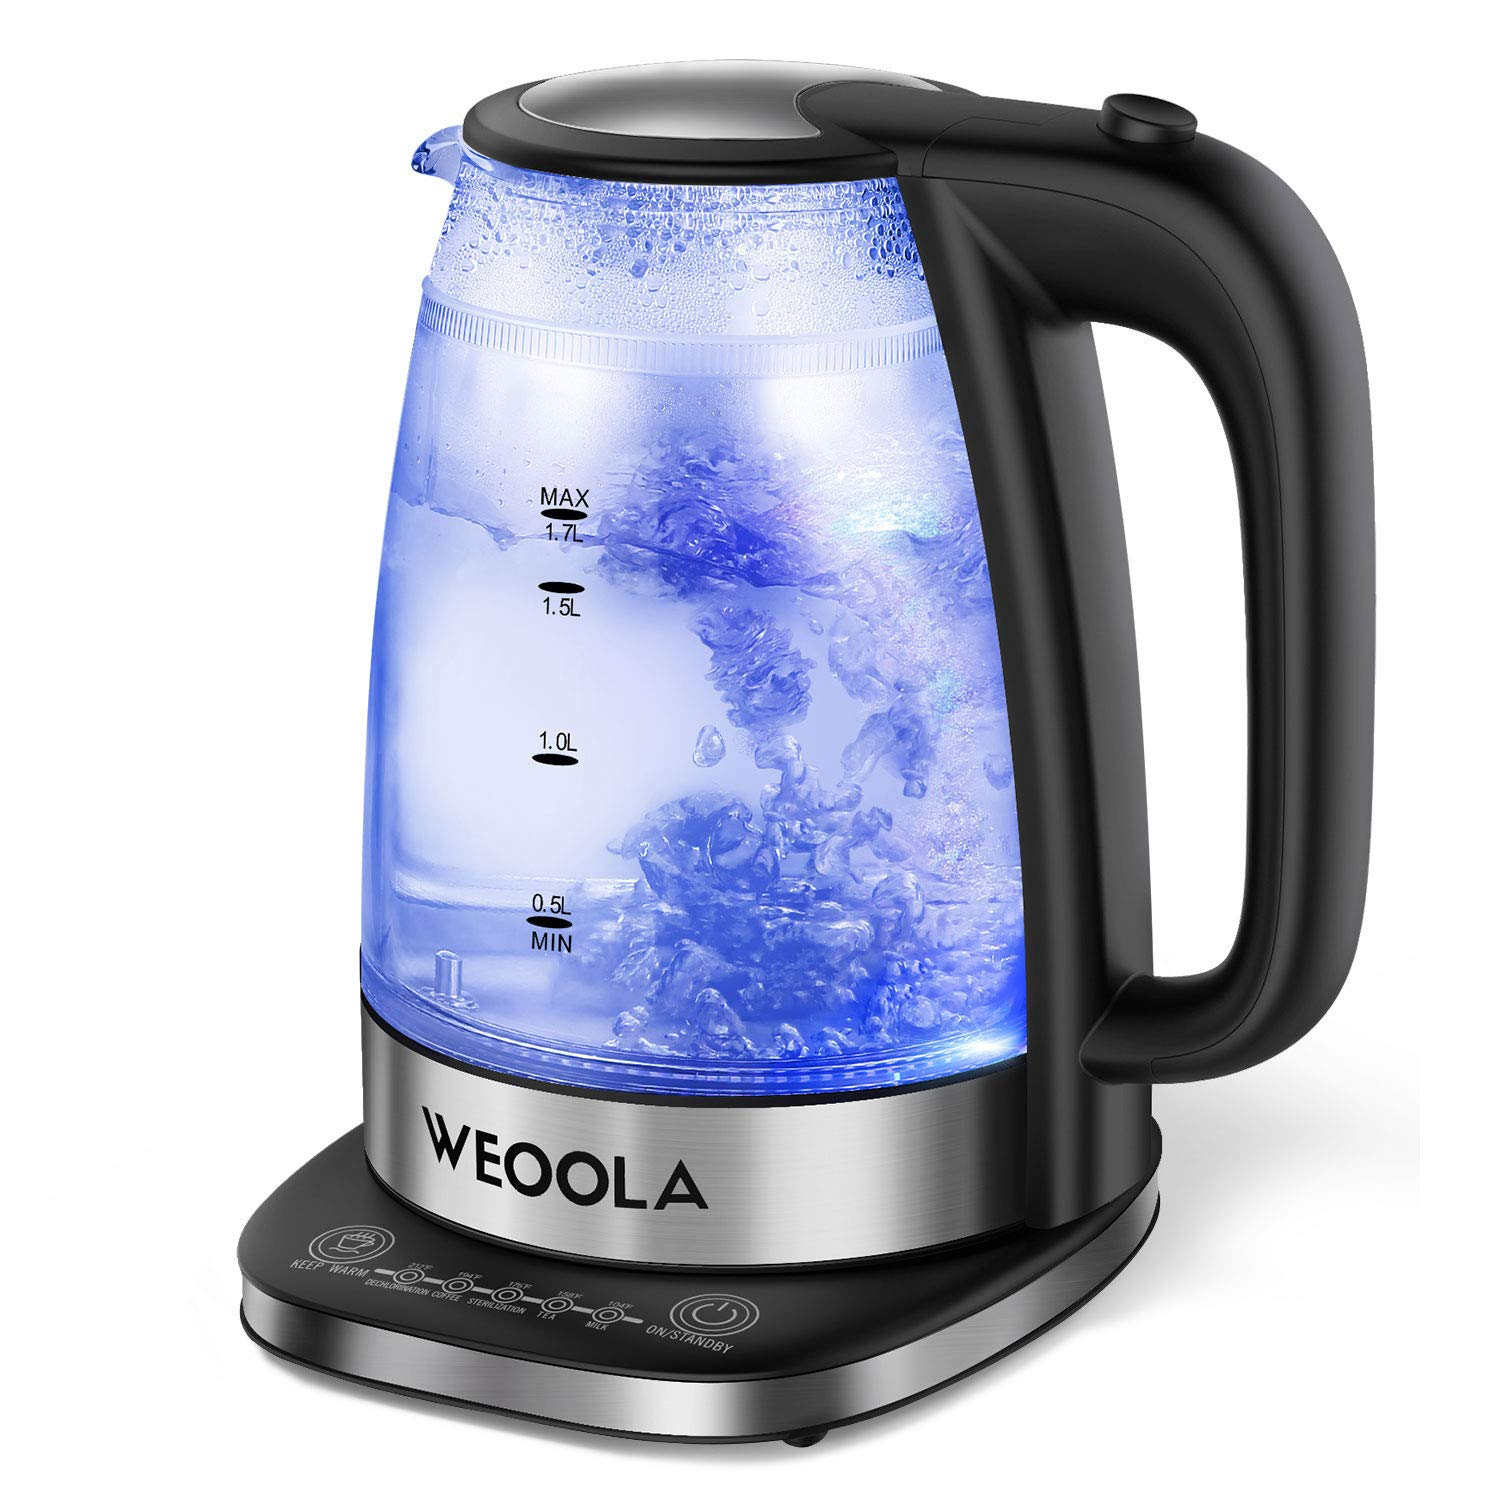 Electric Kettle Temperature Control, Cordless Tea & Coffee Pot with 5 Preset Temp Functions, Double Wall with LED Indicator, Quick Boil, Auto Shut Off and Boil Dry Protection (BPA Free, 1.7L/1500W)